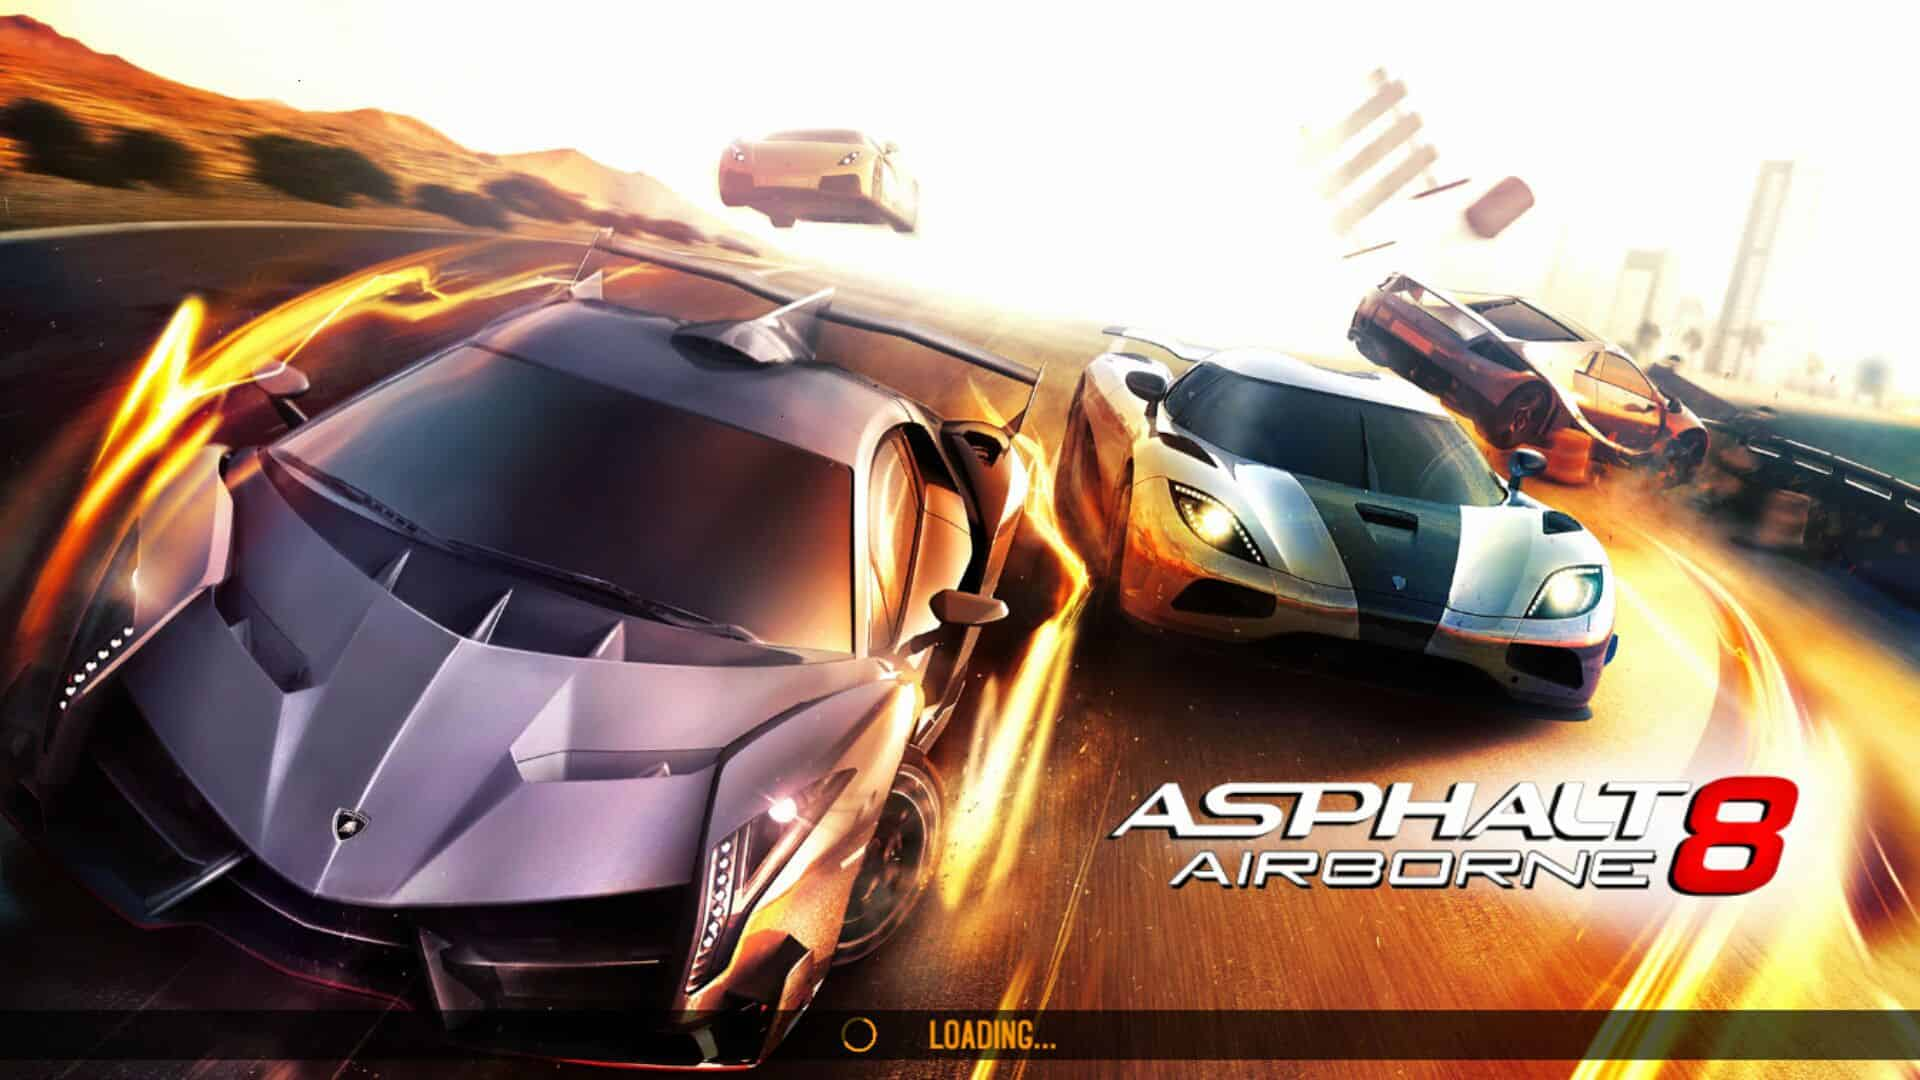 Not able to Play High-end Games Like Asphalt 8